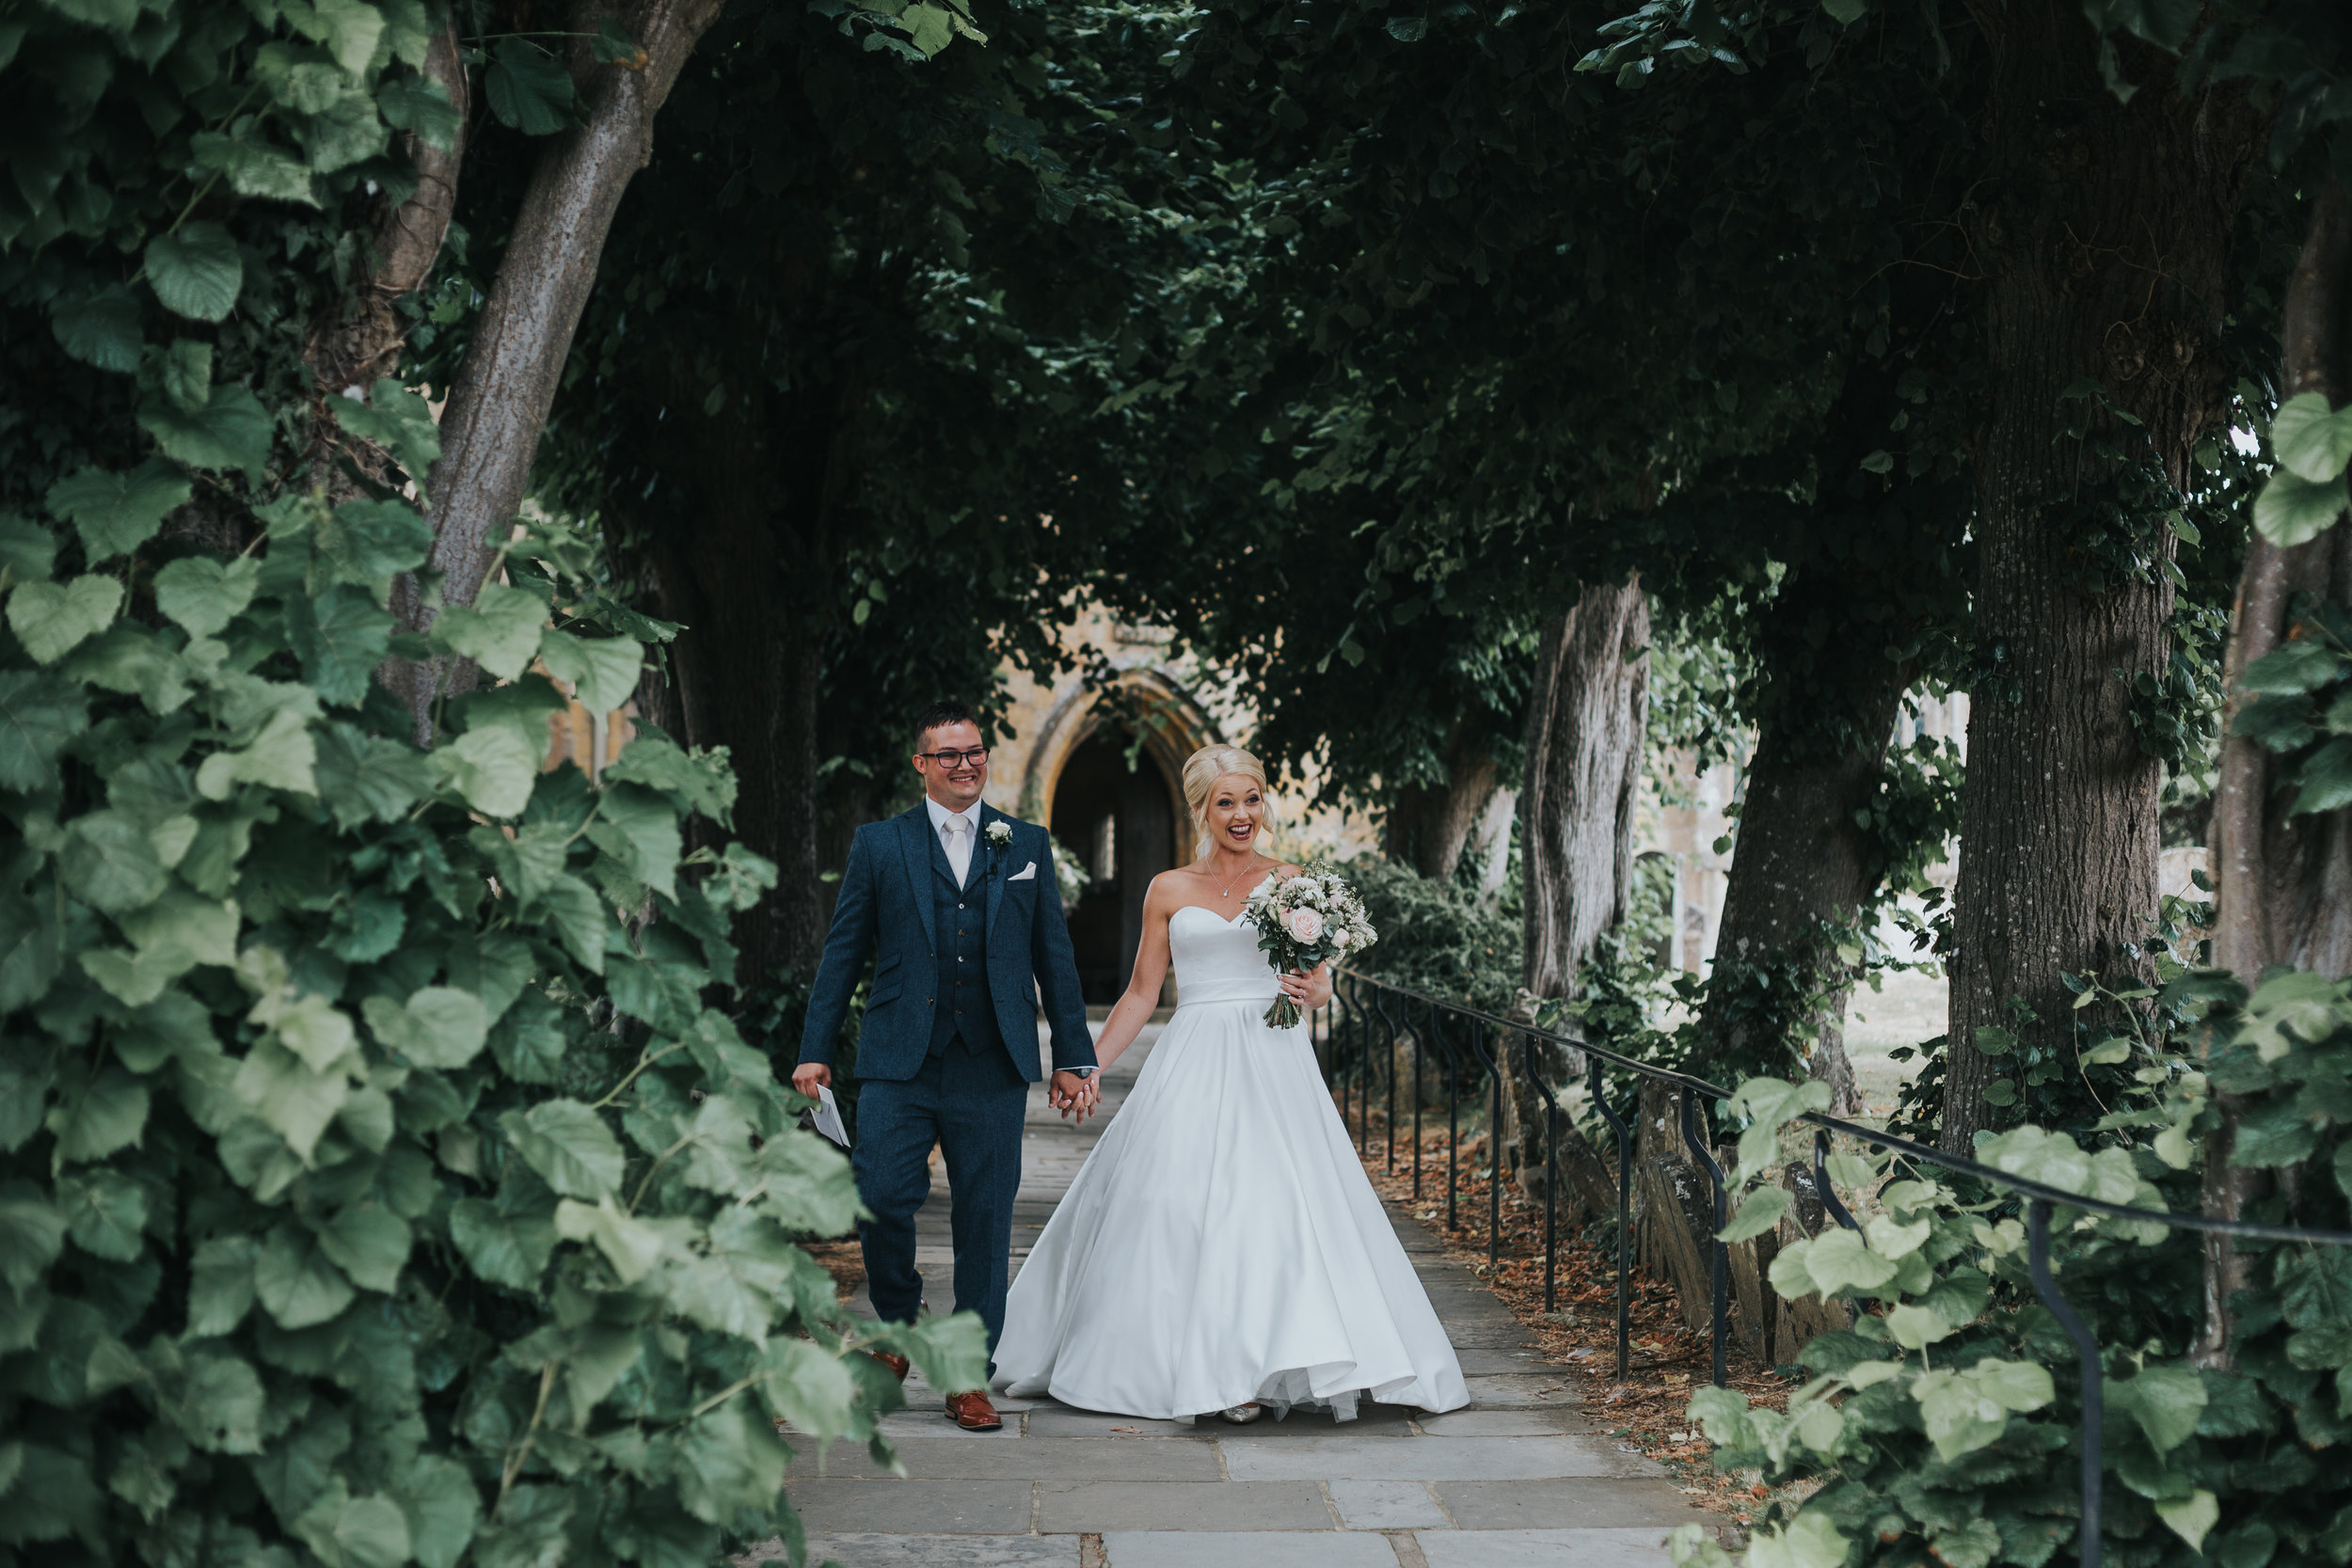 Bride and Groom walk down the church path towards their guests.